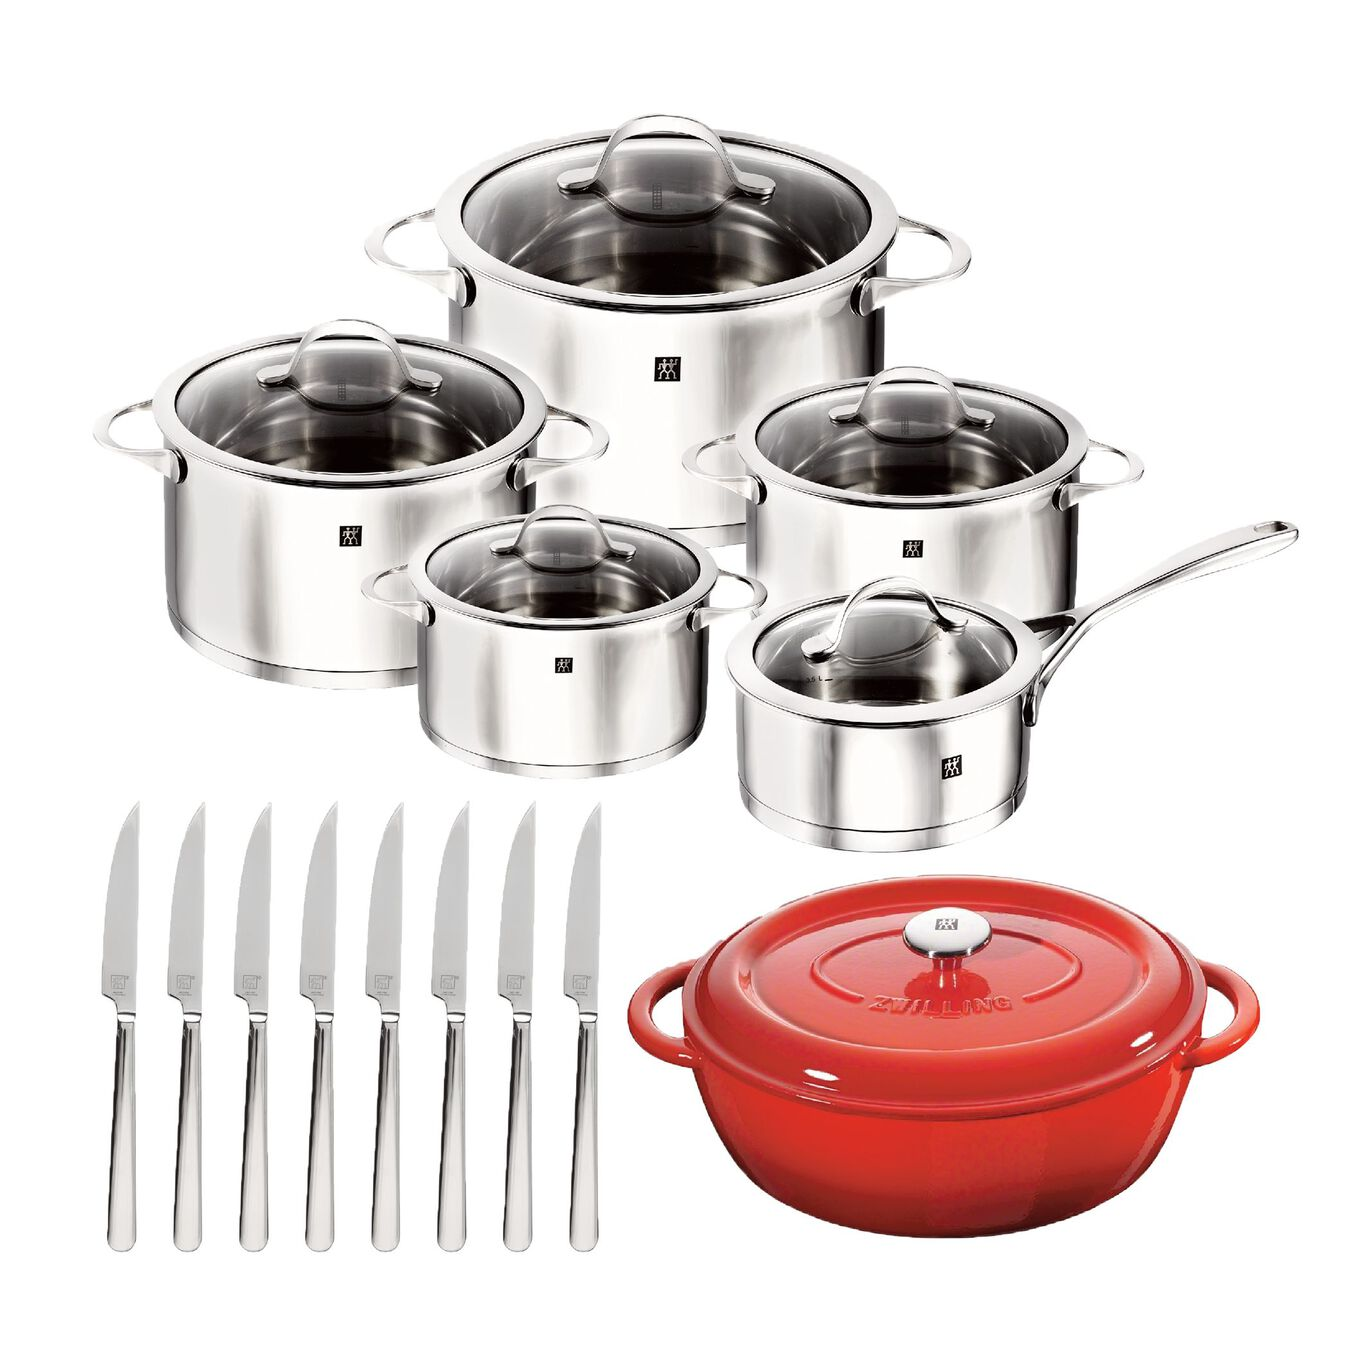 Cookware Set With Bonus Cast Iron French Oven and 8-pc Steak Knives, 10 Piece | round | 18/10 Stainless Steel,,large 2